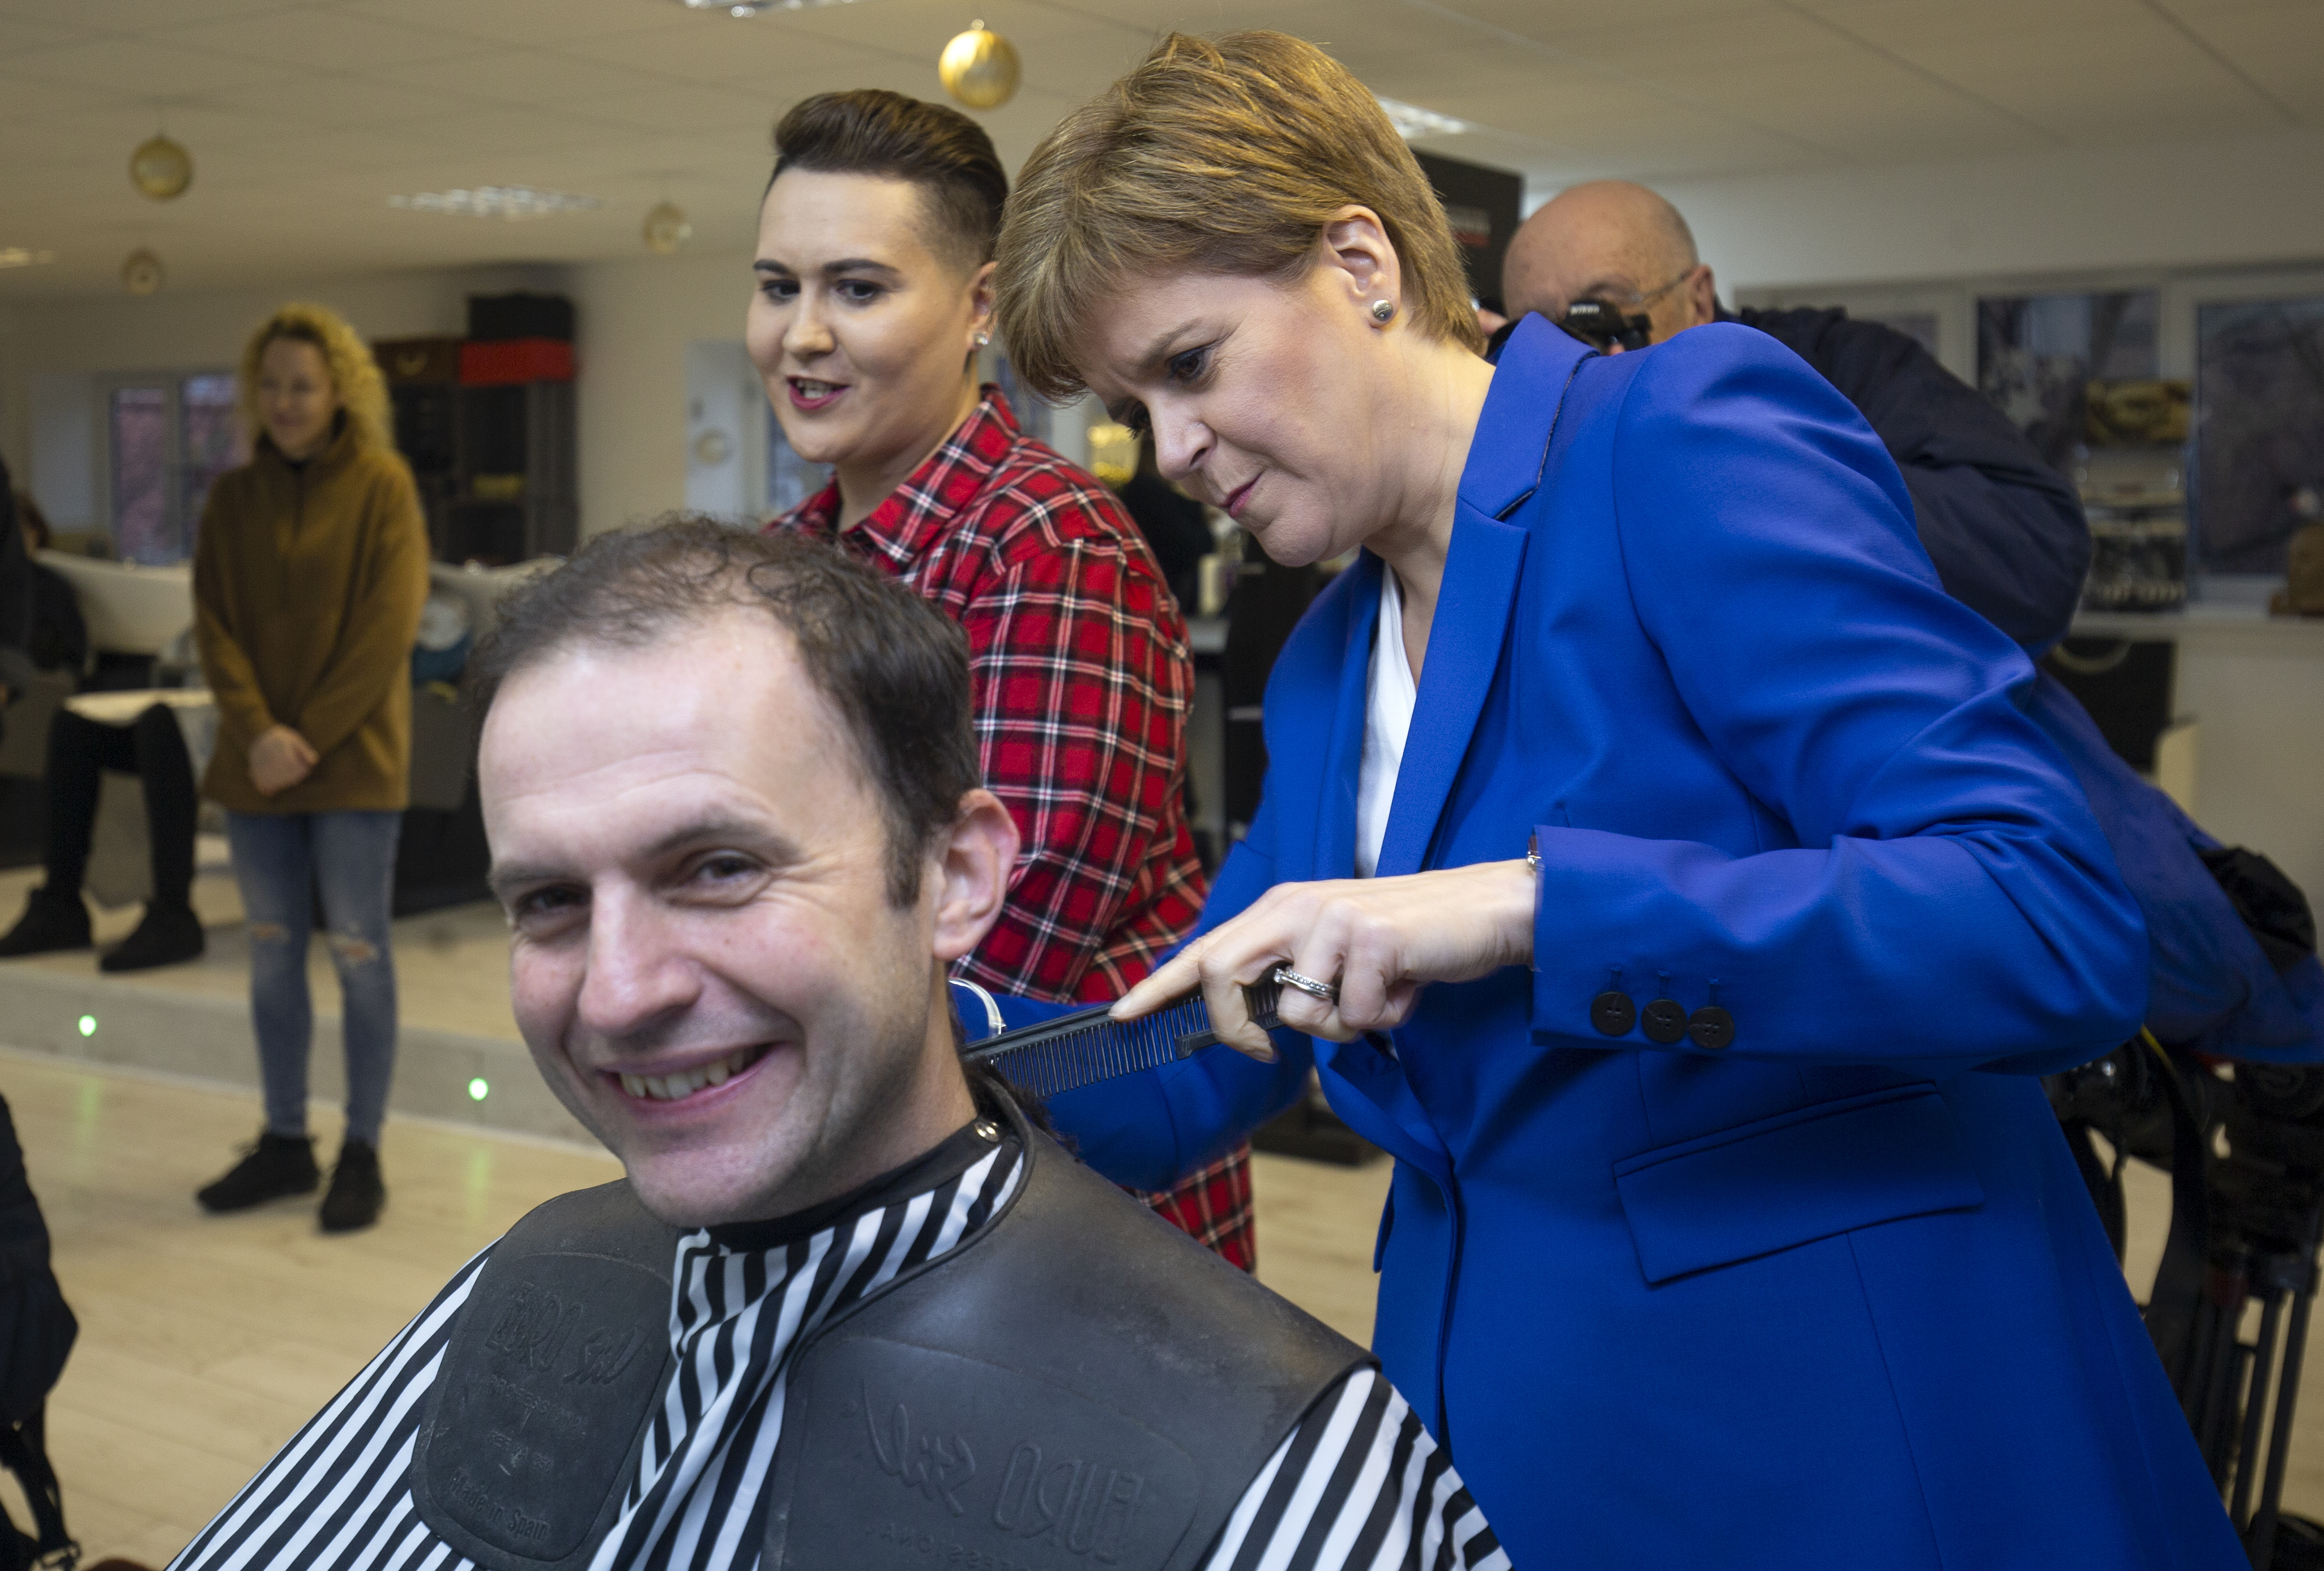 SNP leader Nicola Sturgeon gives her party's candidate for North East Fife Stephen Gethins a haircut, during a visit to Craig Boyd Hairdressing in Leven, Fife, whilst on the General Election campaign trail.